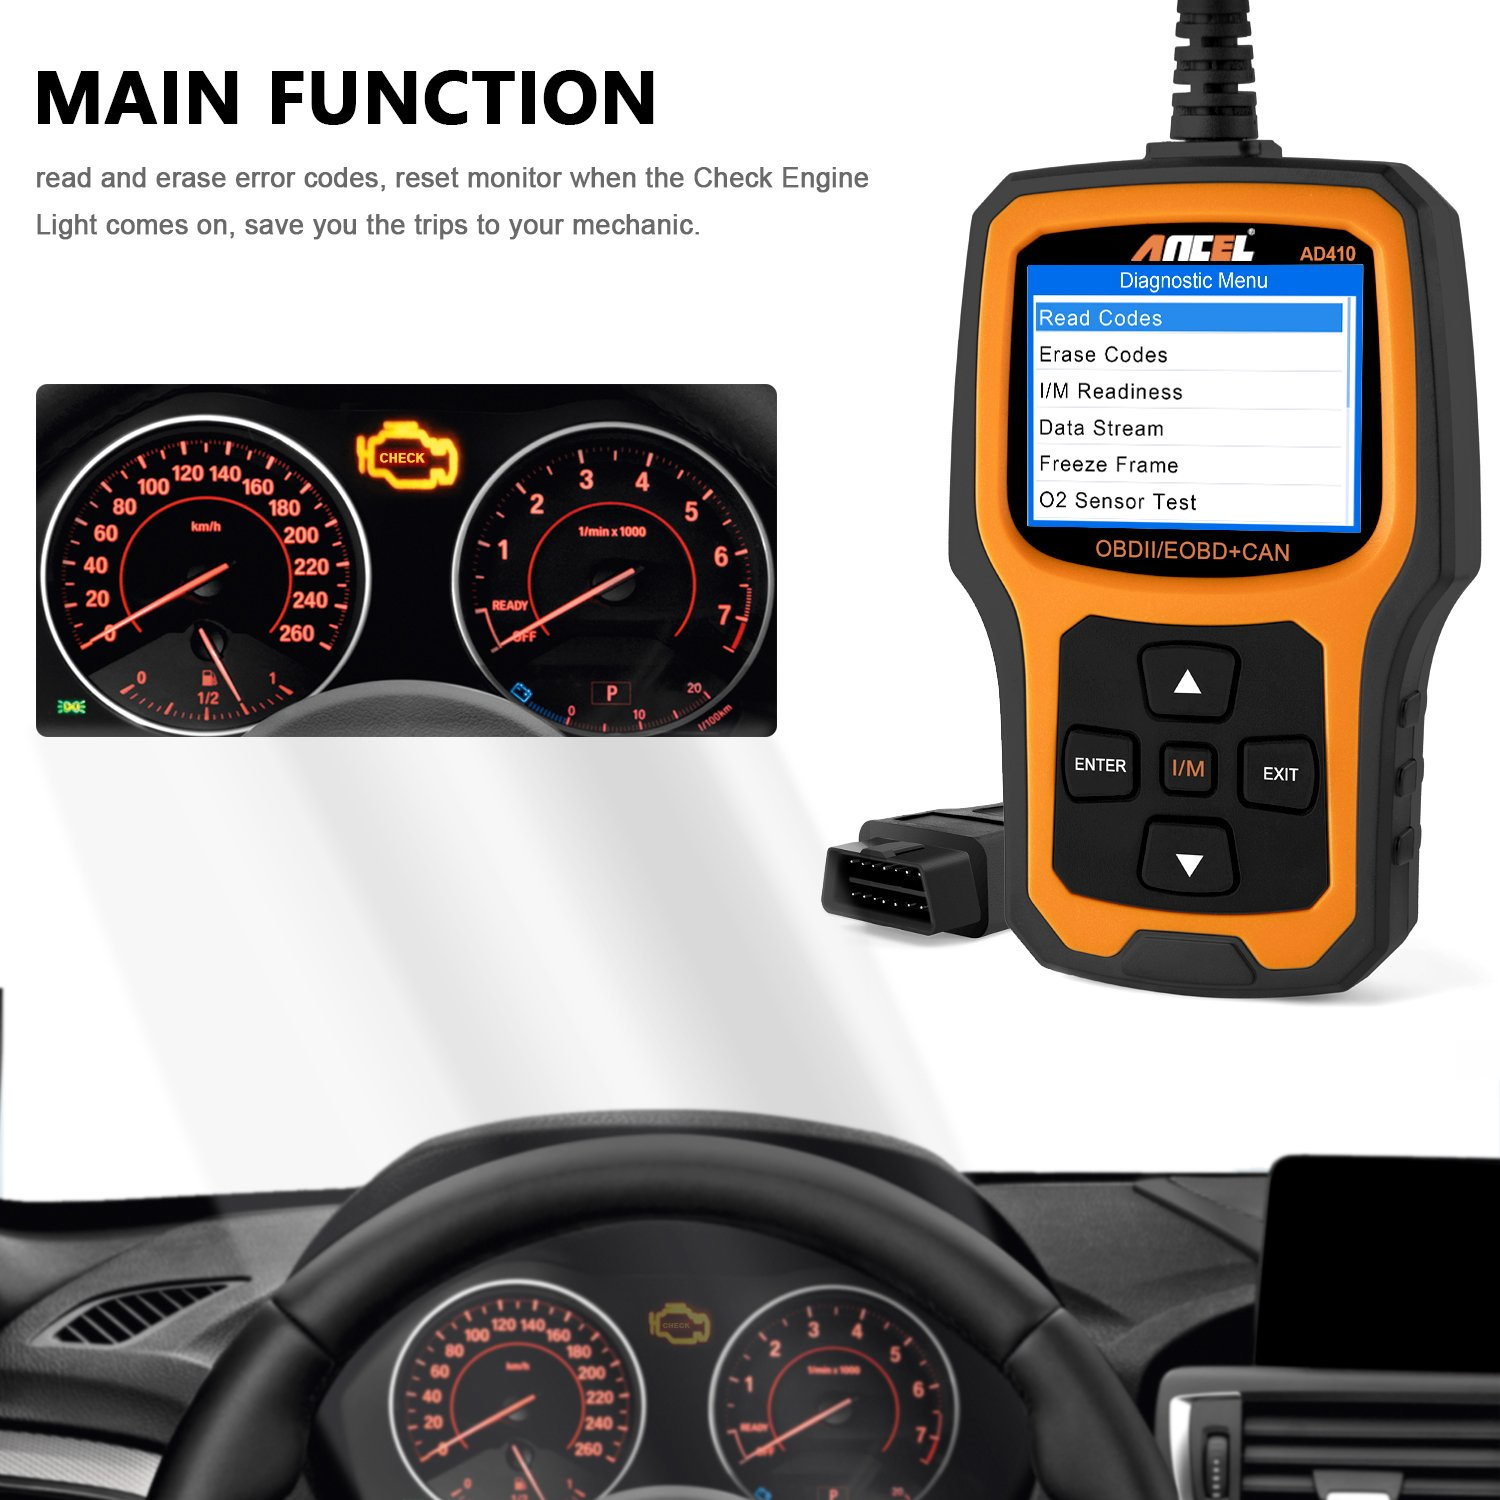 ANCEL AD410 Enhanced OBD II Vehicle Code Reader Automotive OBD2 Scanner Auto Check Engine Light Scan Tool (Black-Yellow)